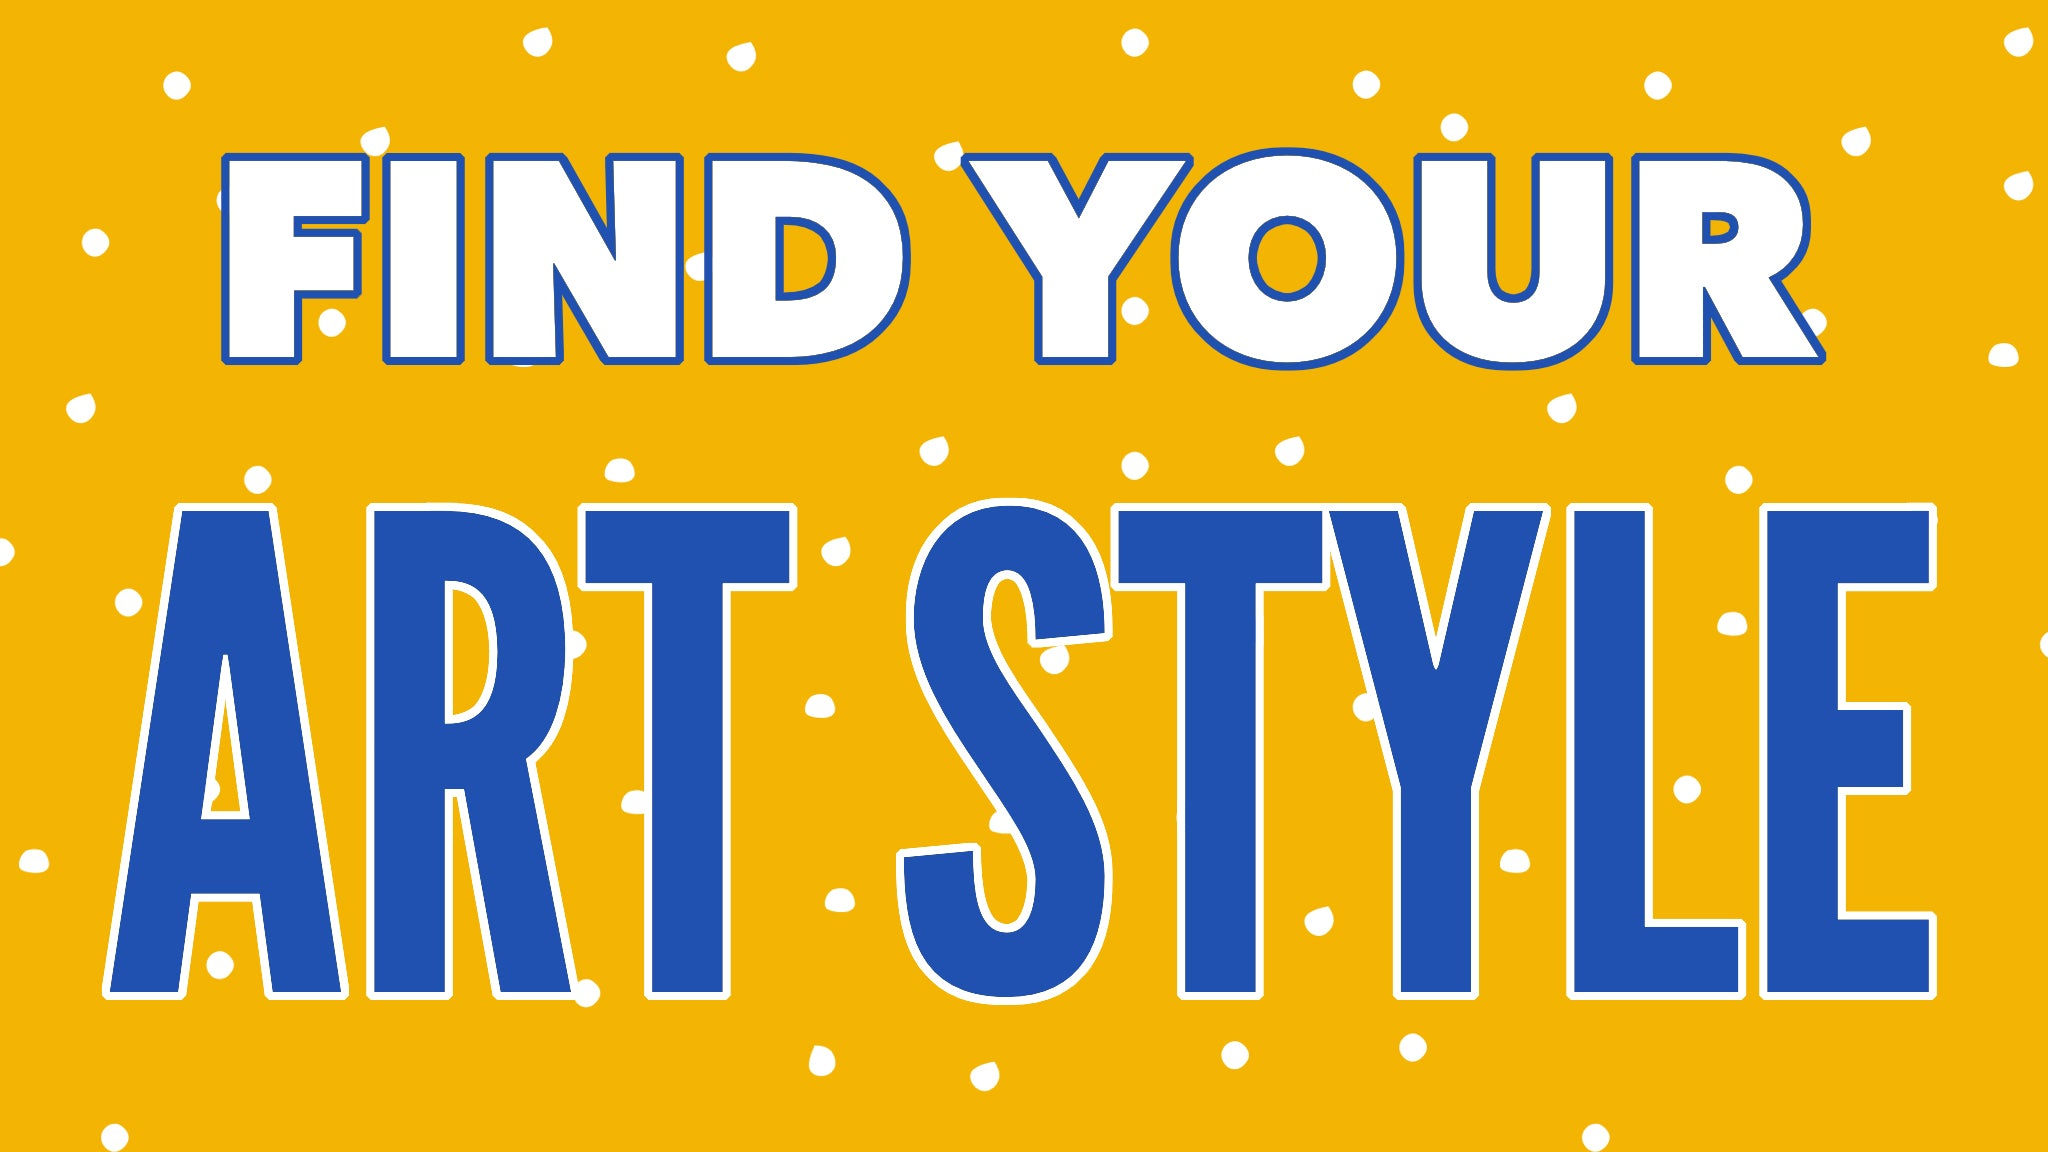 How To Find Your Art Style: 4 Tips